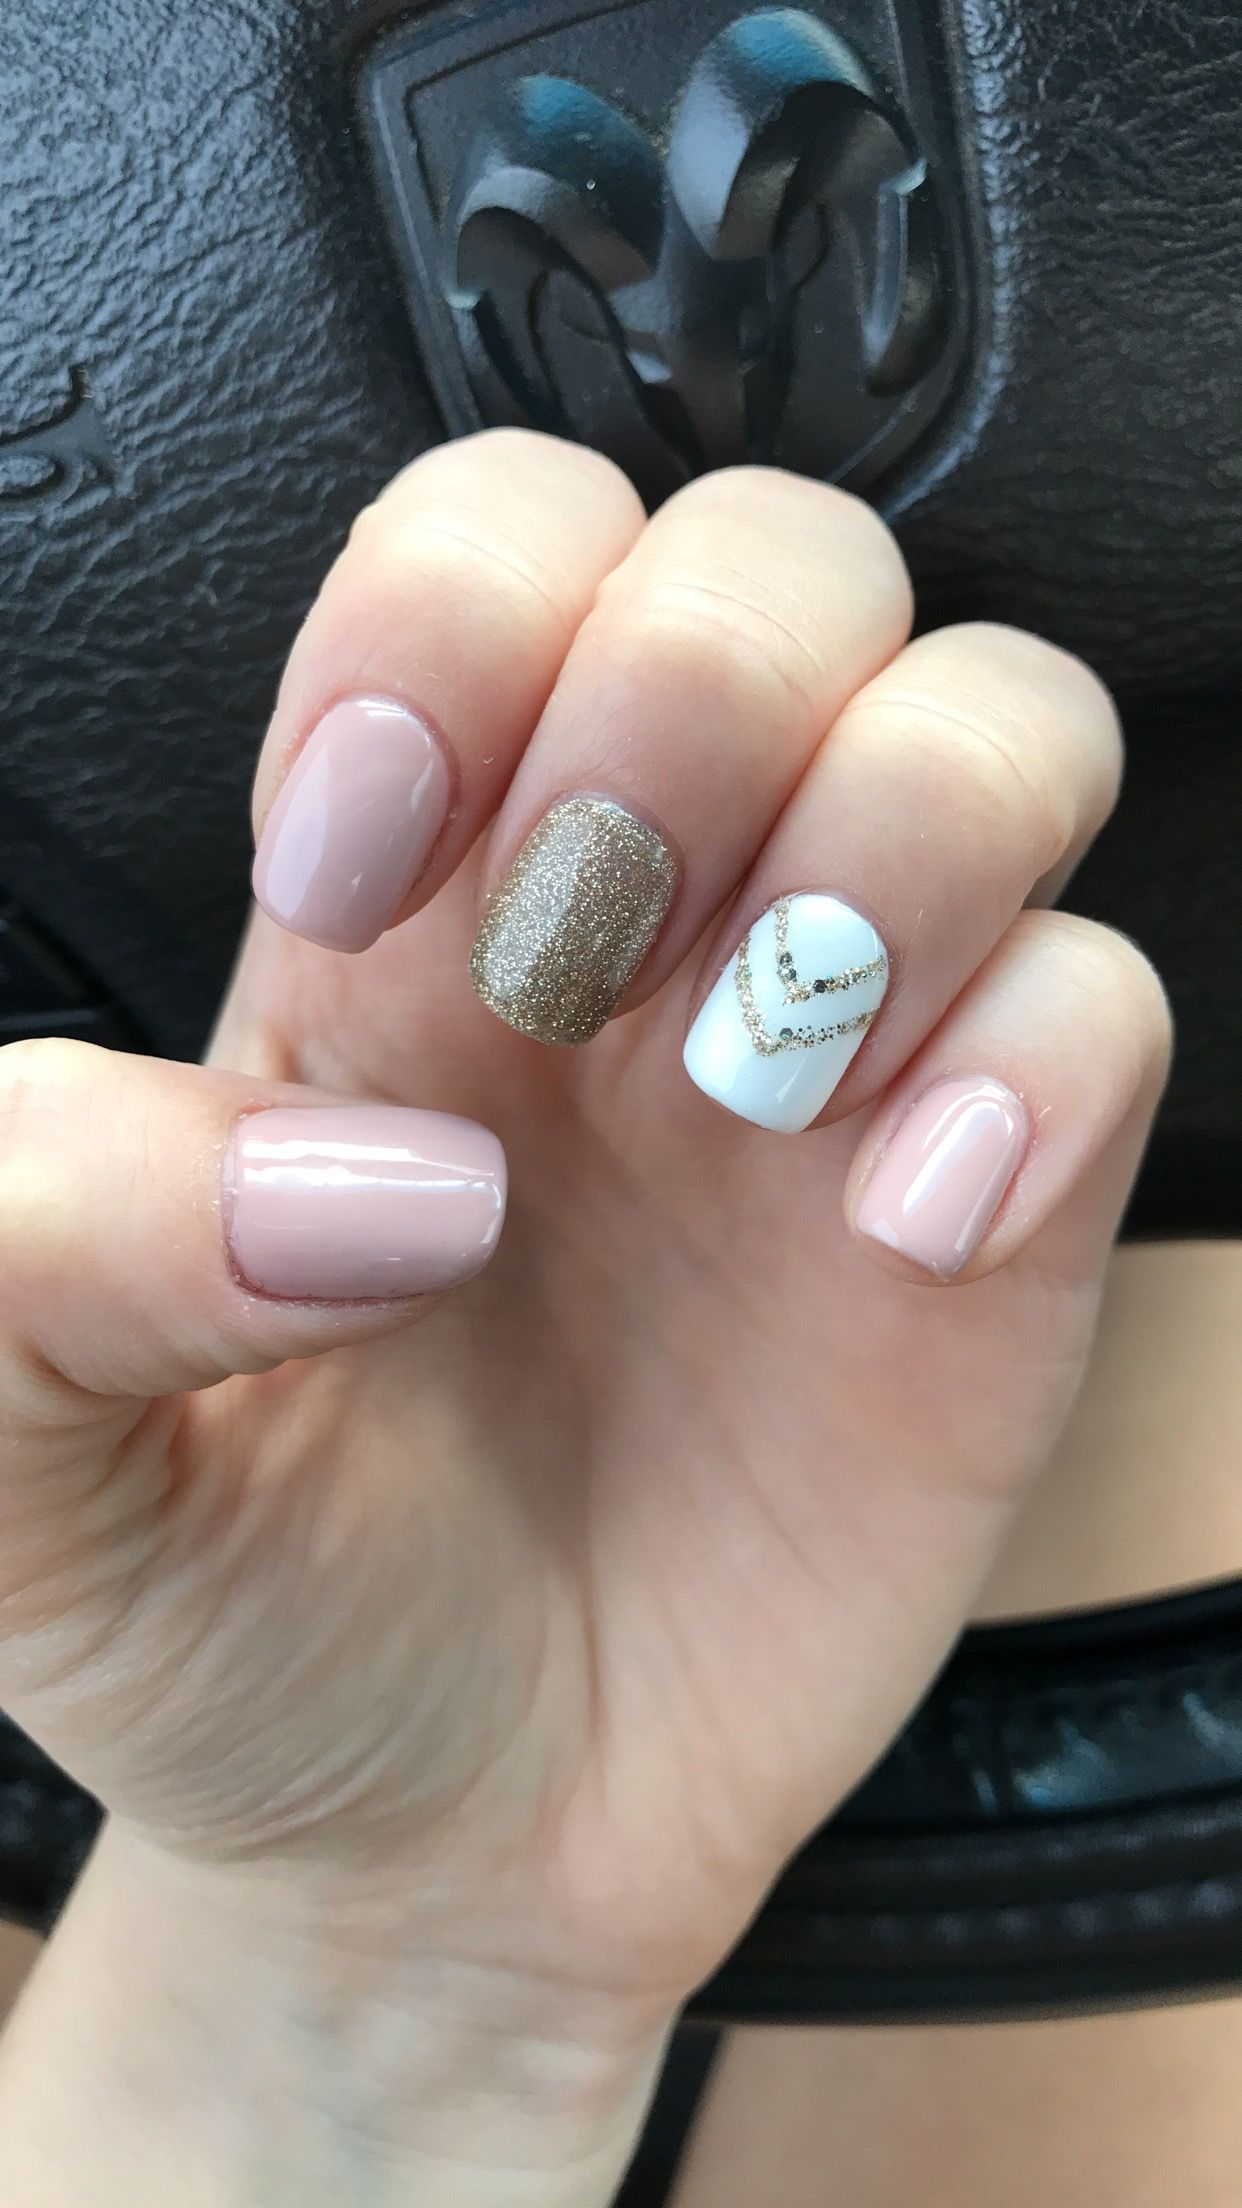 Pink Nails Gold Nail And White Nail With Gold Chevron Pinterest Catherinesullivan2017 Gold Acrylic Nails Gold Nails White Nails With Gold